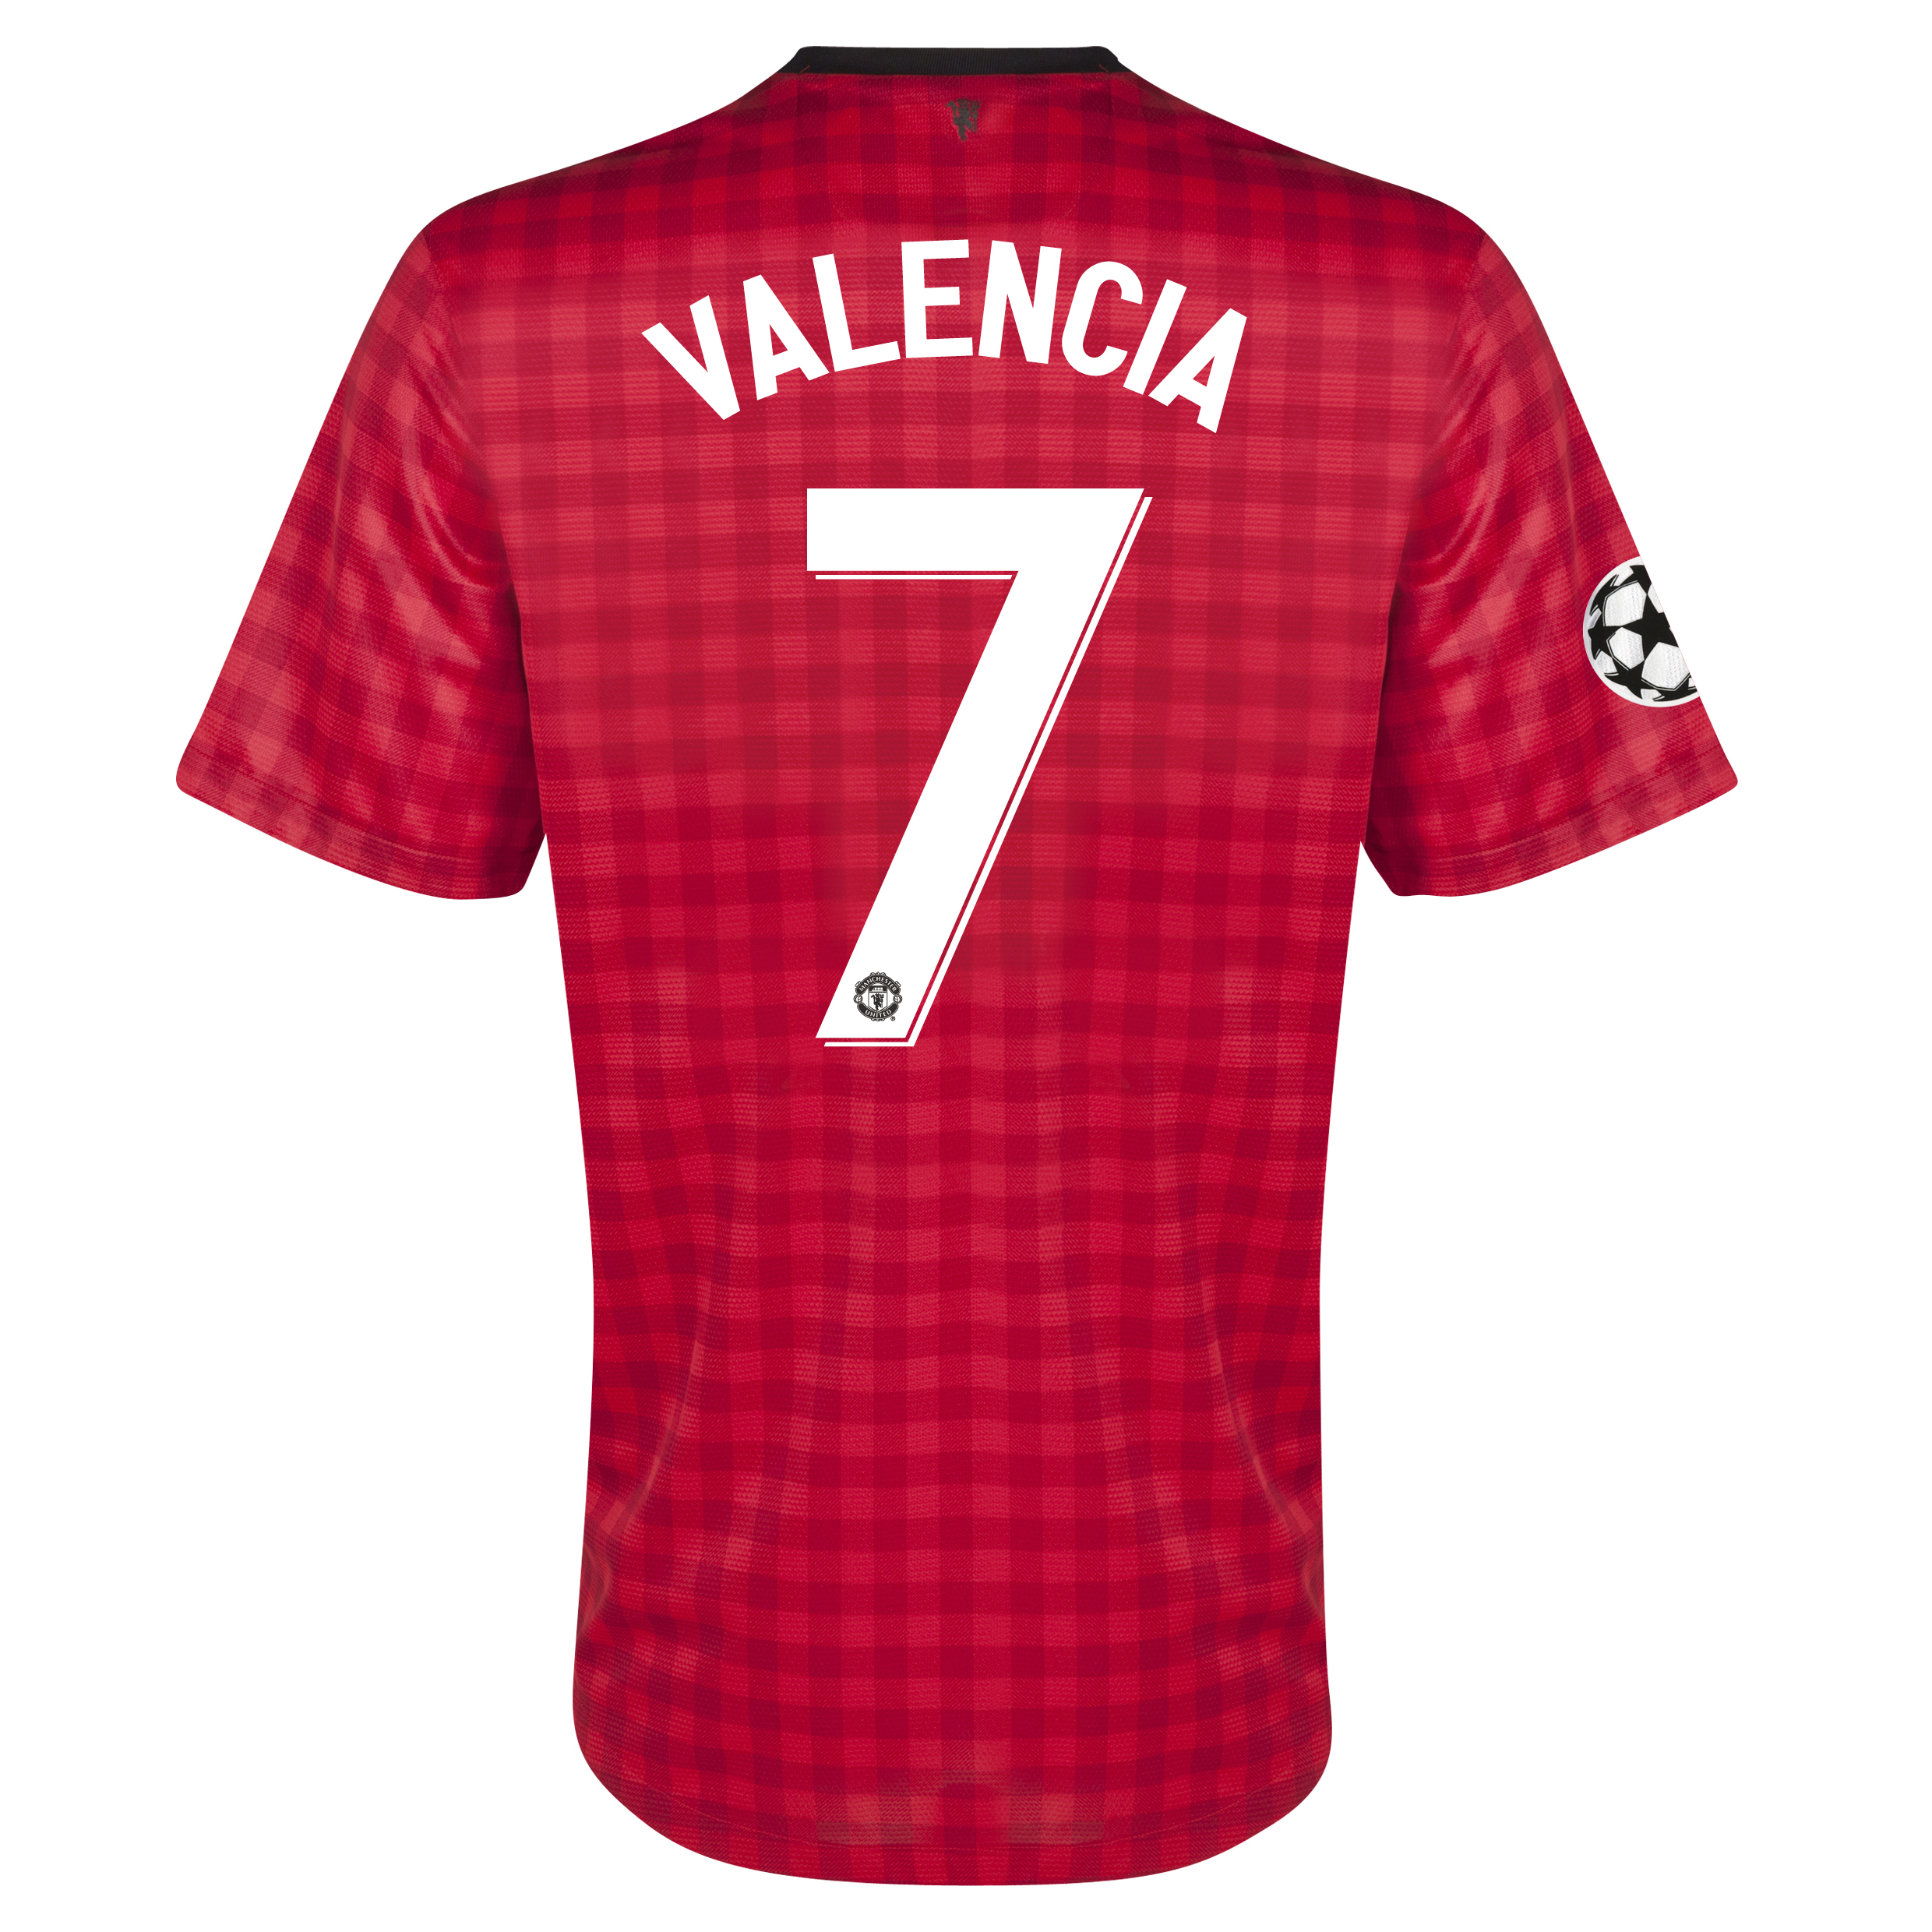 Man United UEFA Champions League Home Shirt 2012/13  - Youths with Valencia 7 printing